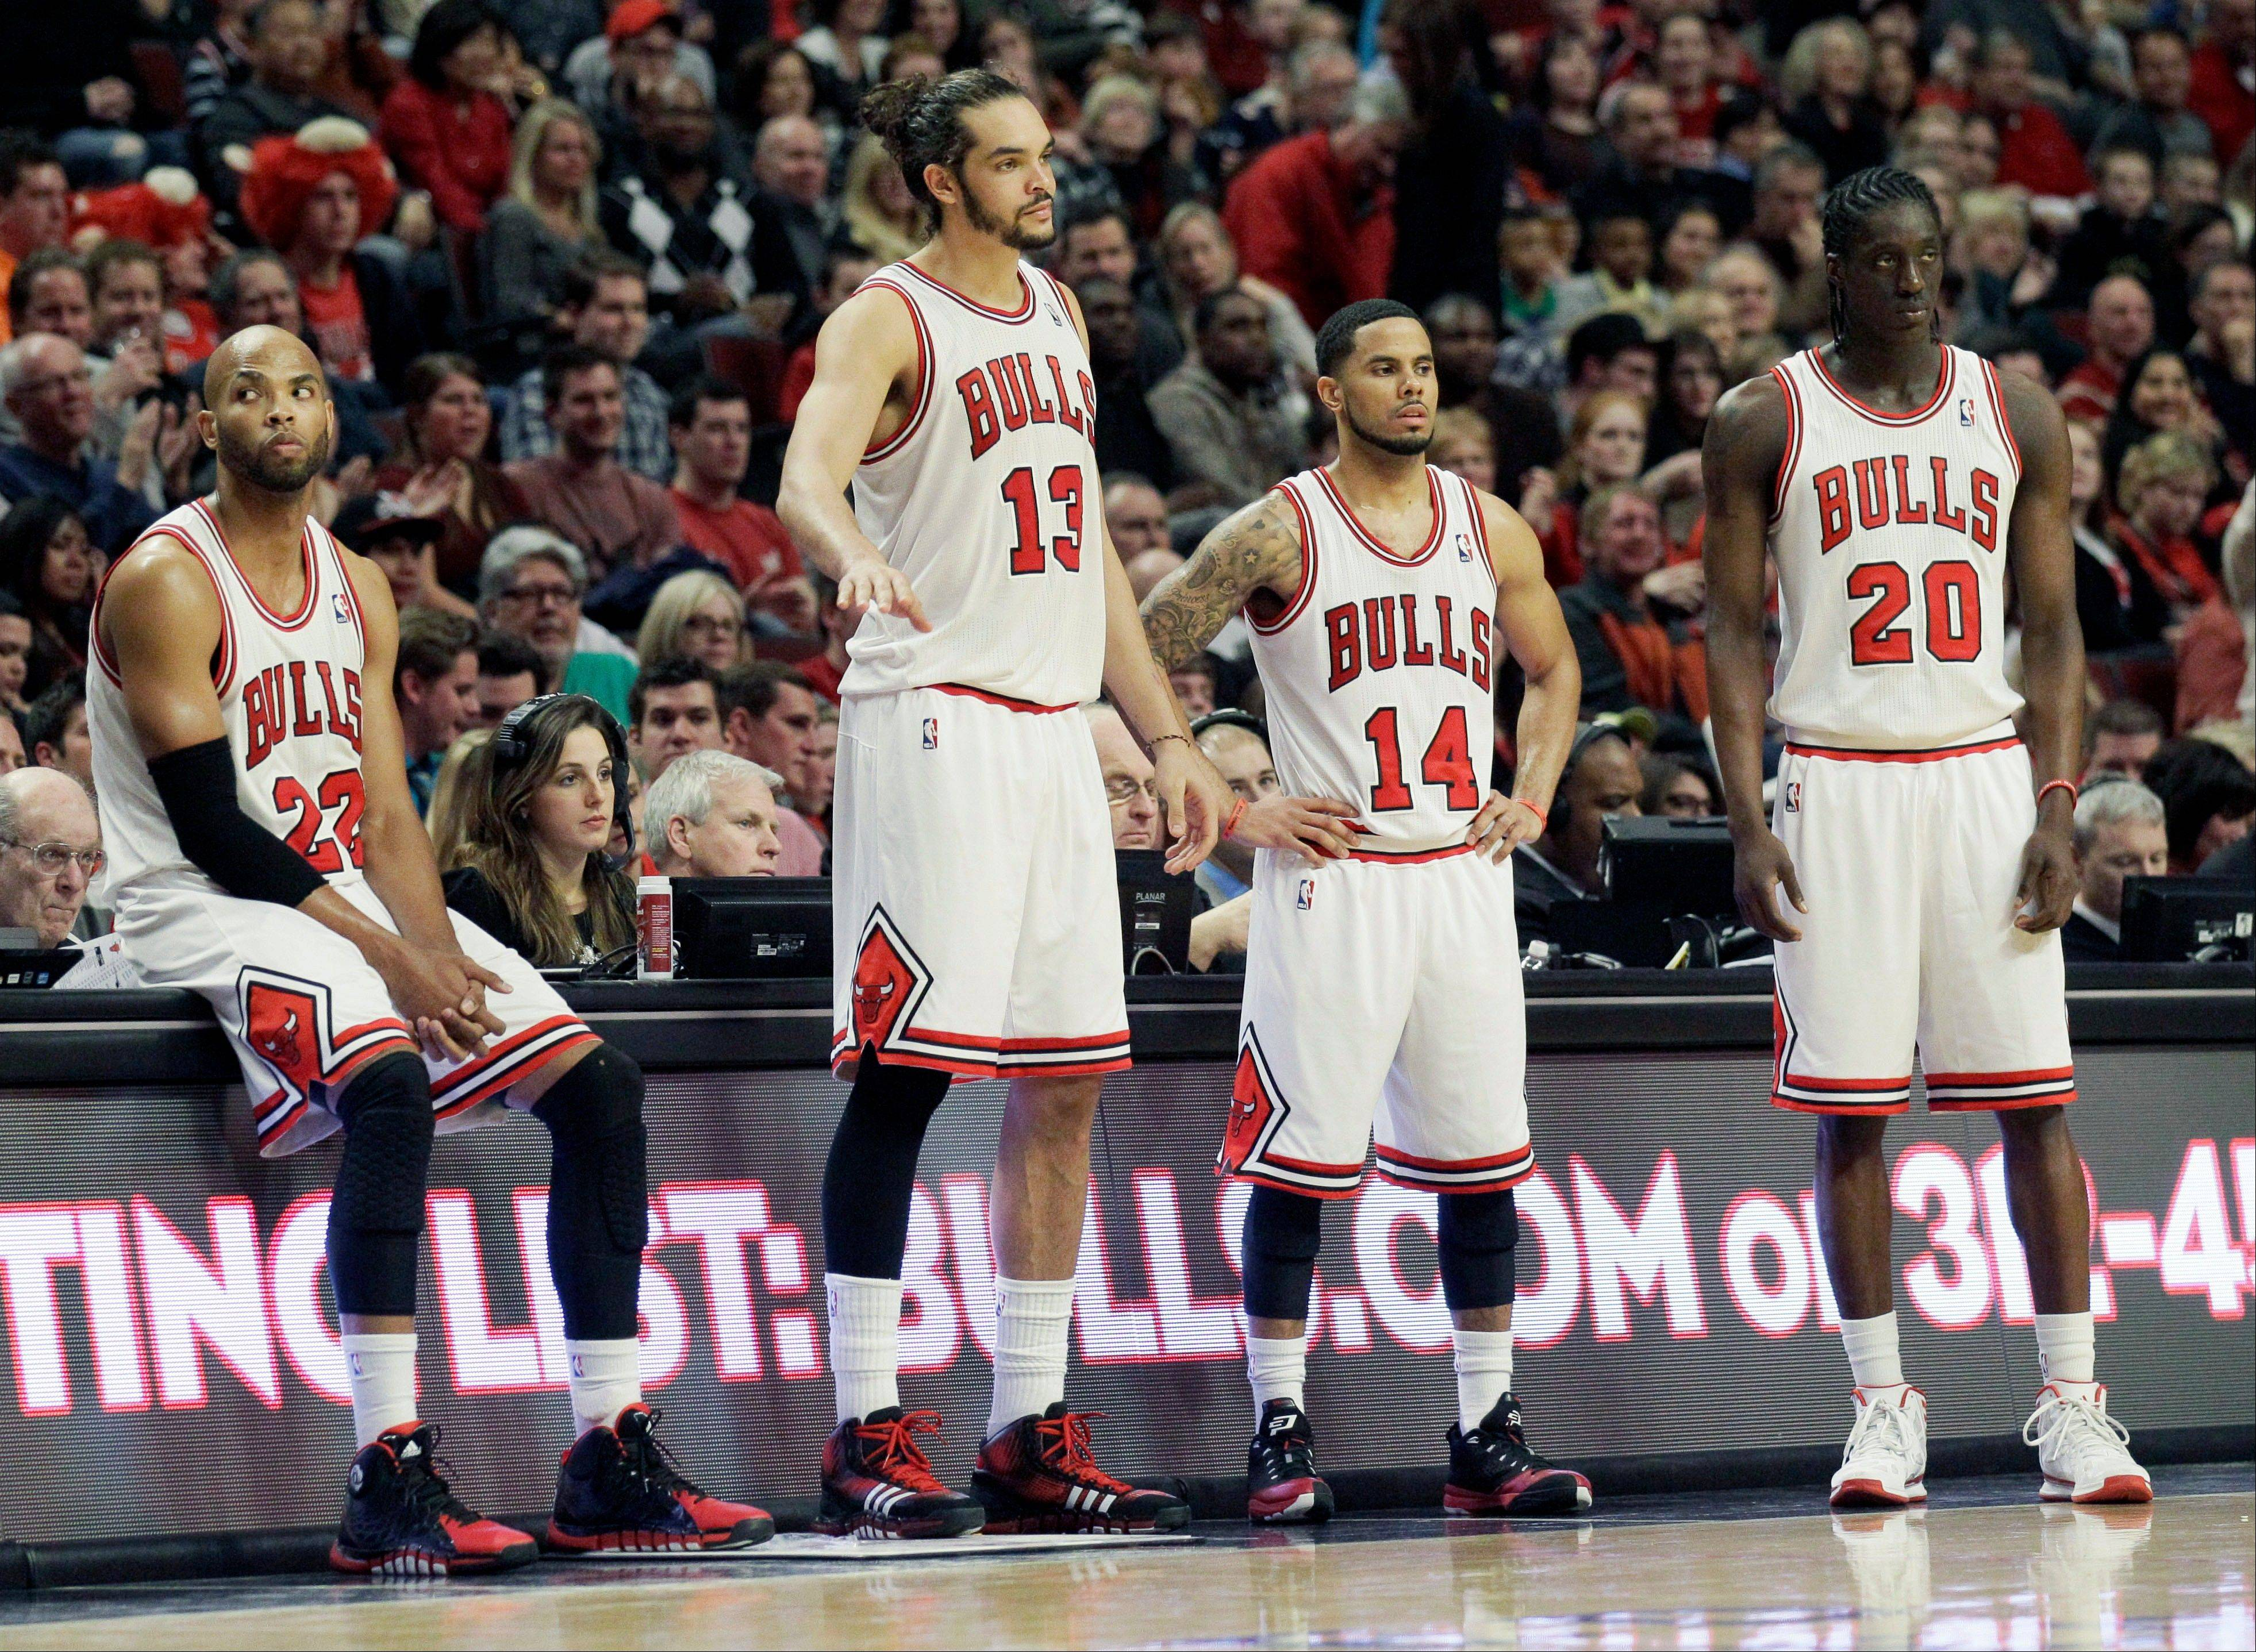 West is best: Mavericks bring Bulls down